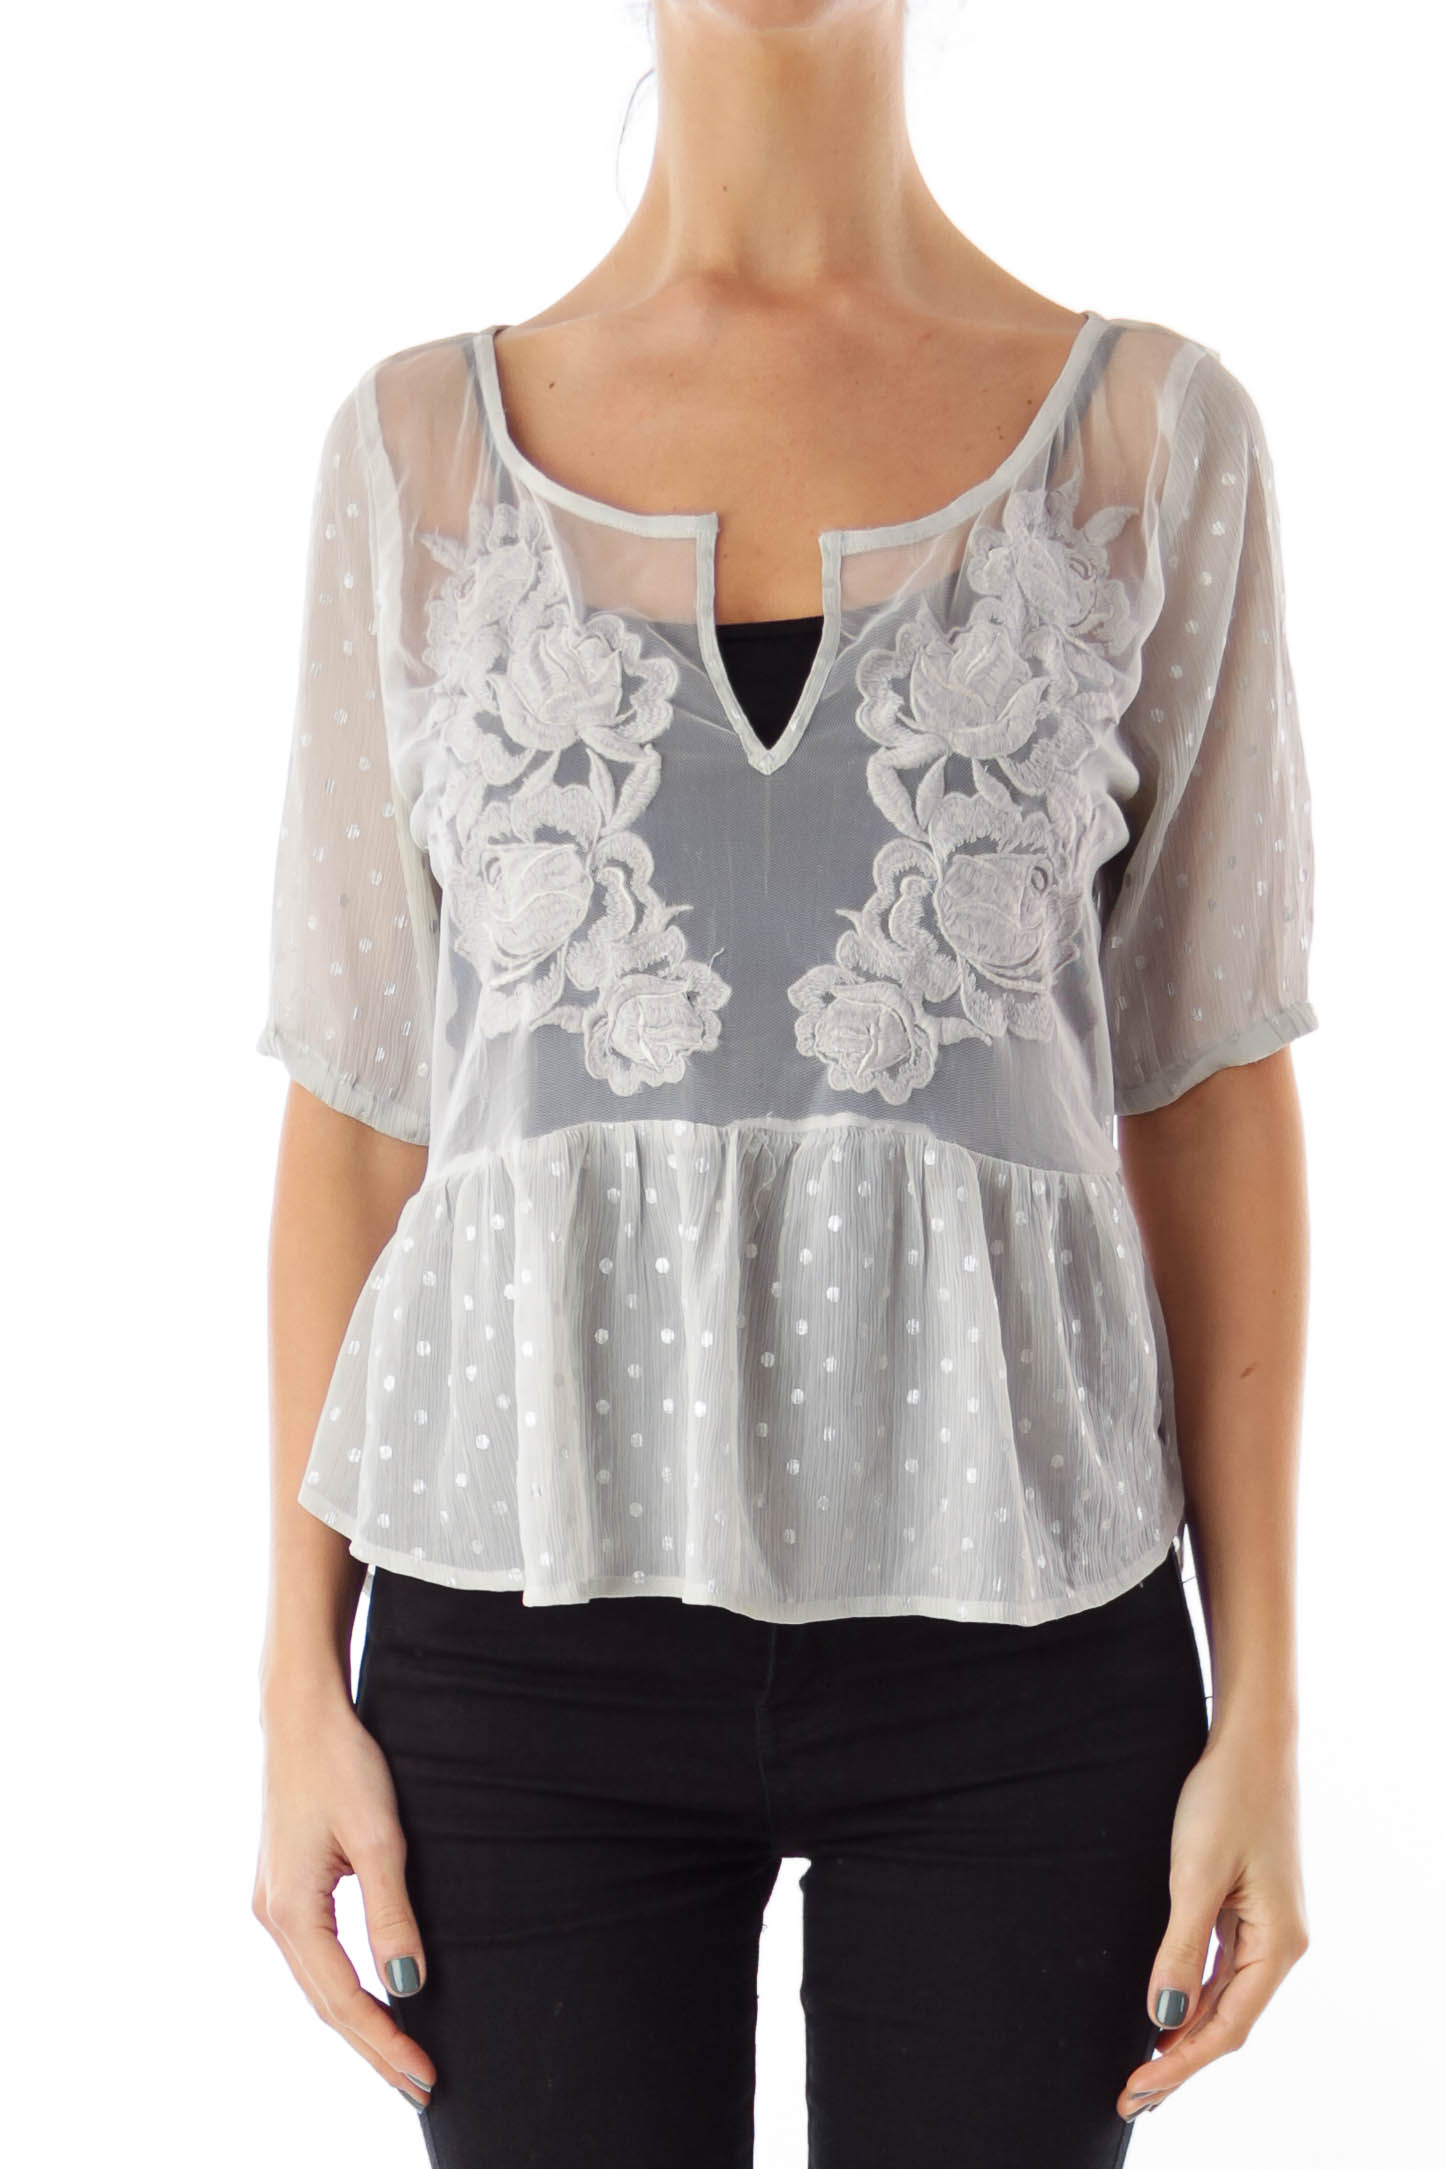 Gray Flower Embroidery Top